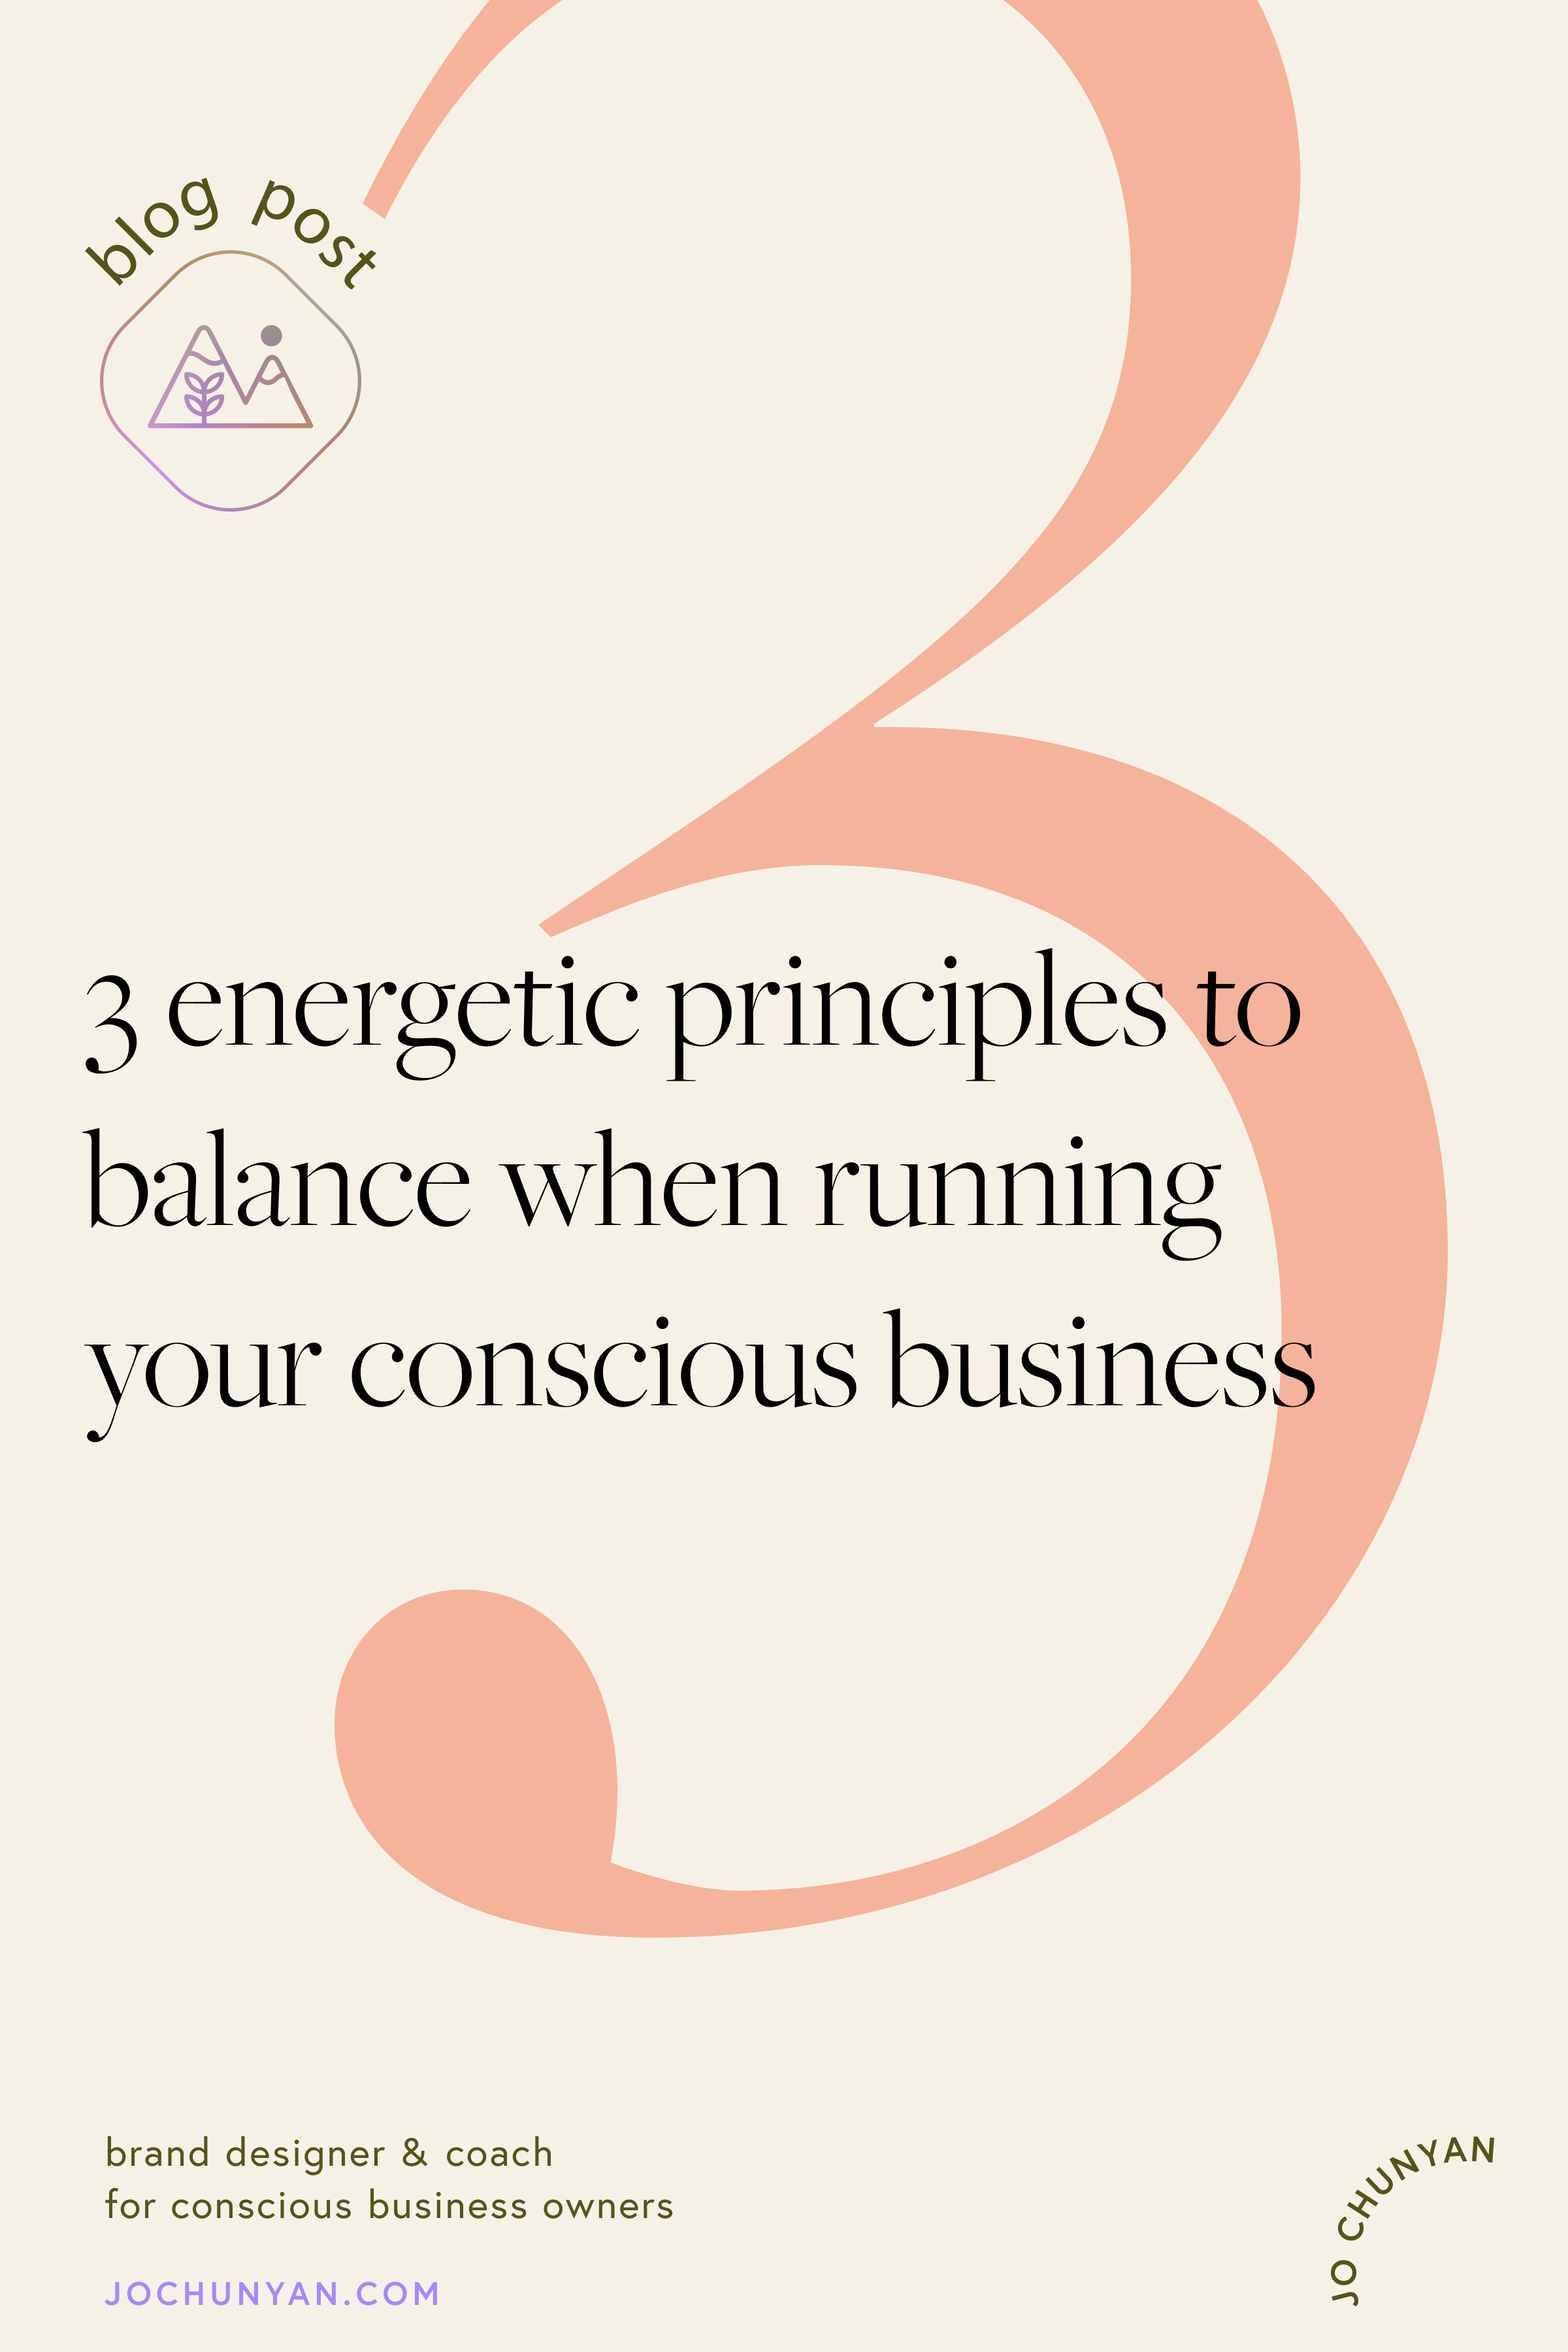 3 energetic principles for running a conscious business